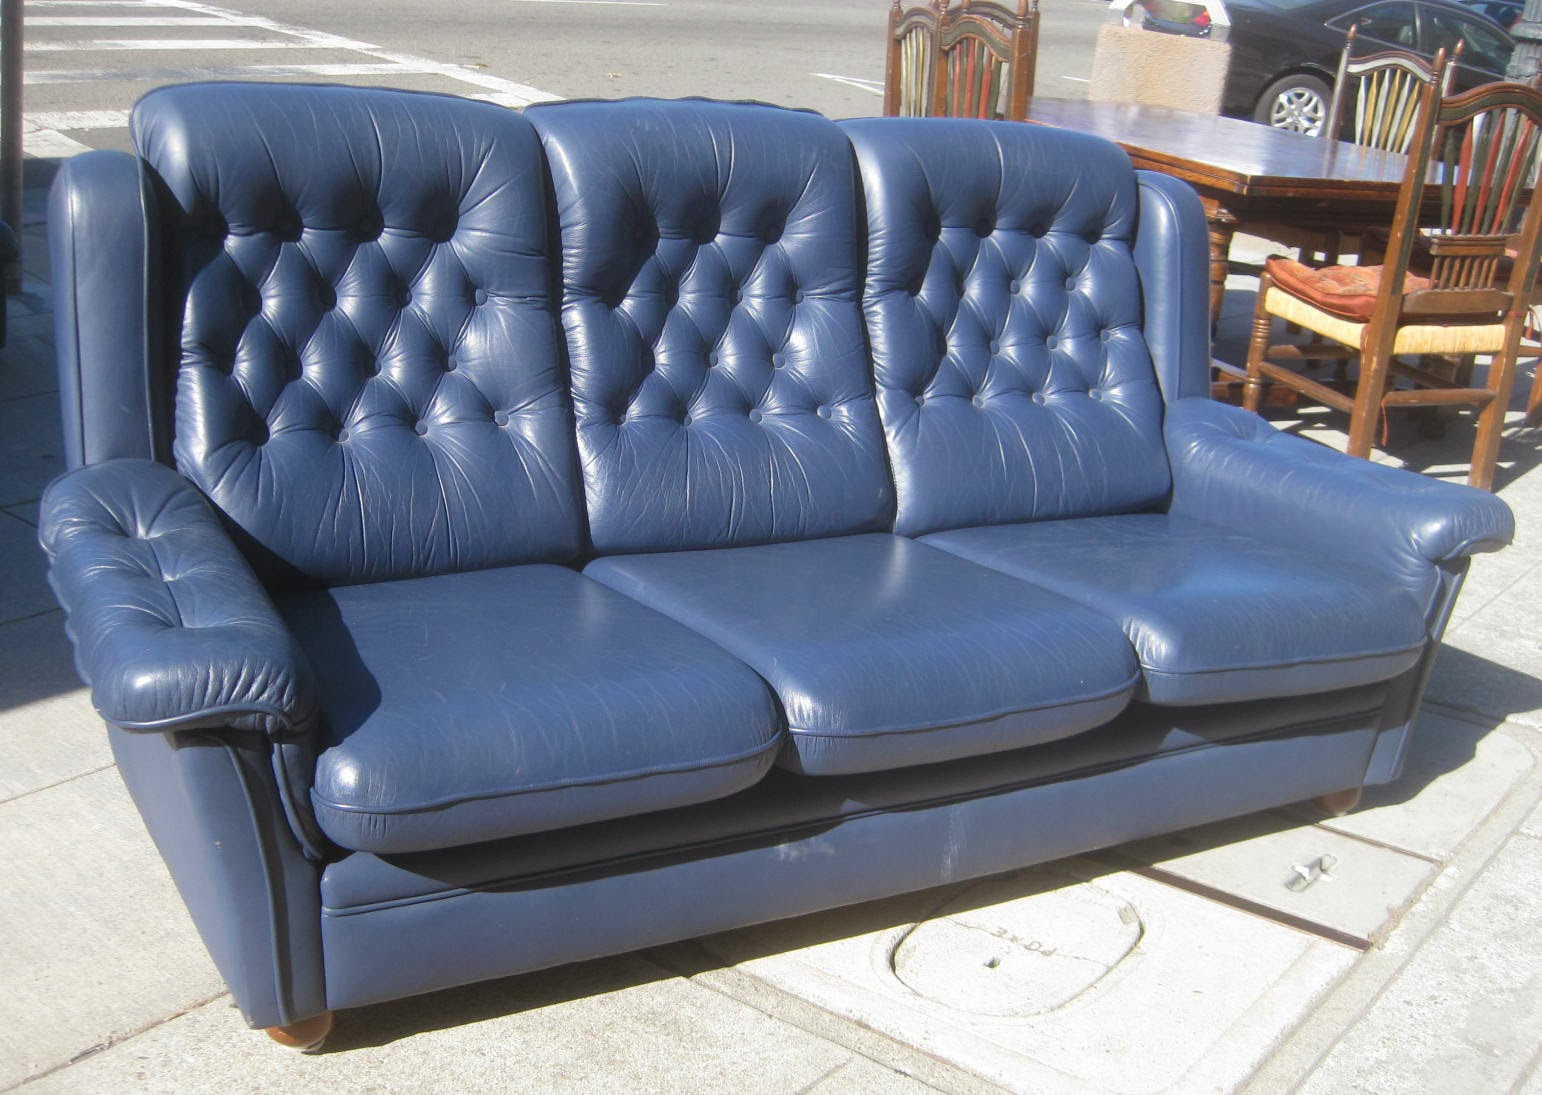 Uhuru furniture collectibles sold blue leather sofa for Blue leather sofa